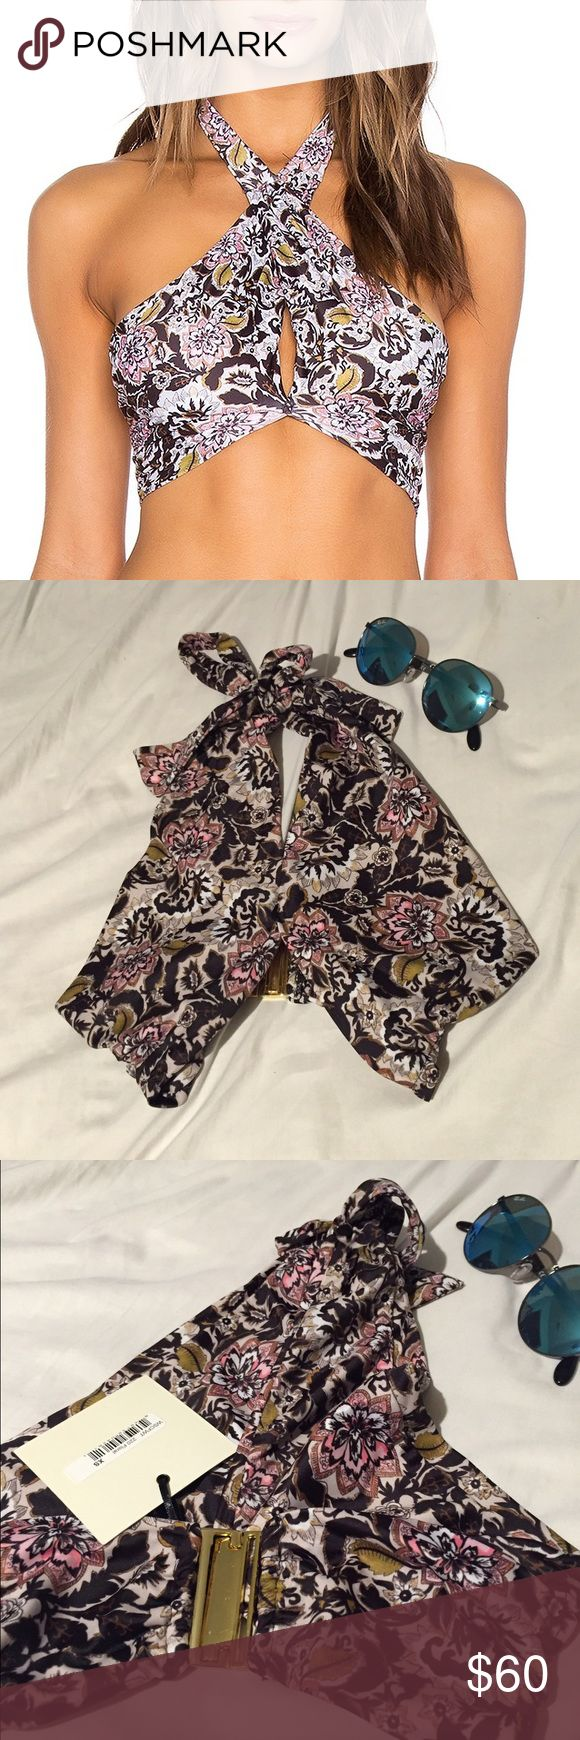 Stone cold fox x beach riot top Size xs! Brand new with tags:) no trades! Style is called Harper top Beach Riot Swim Bikinis